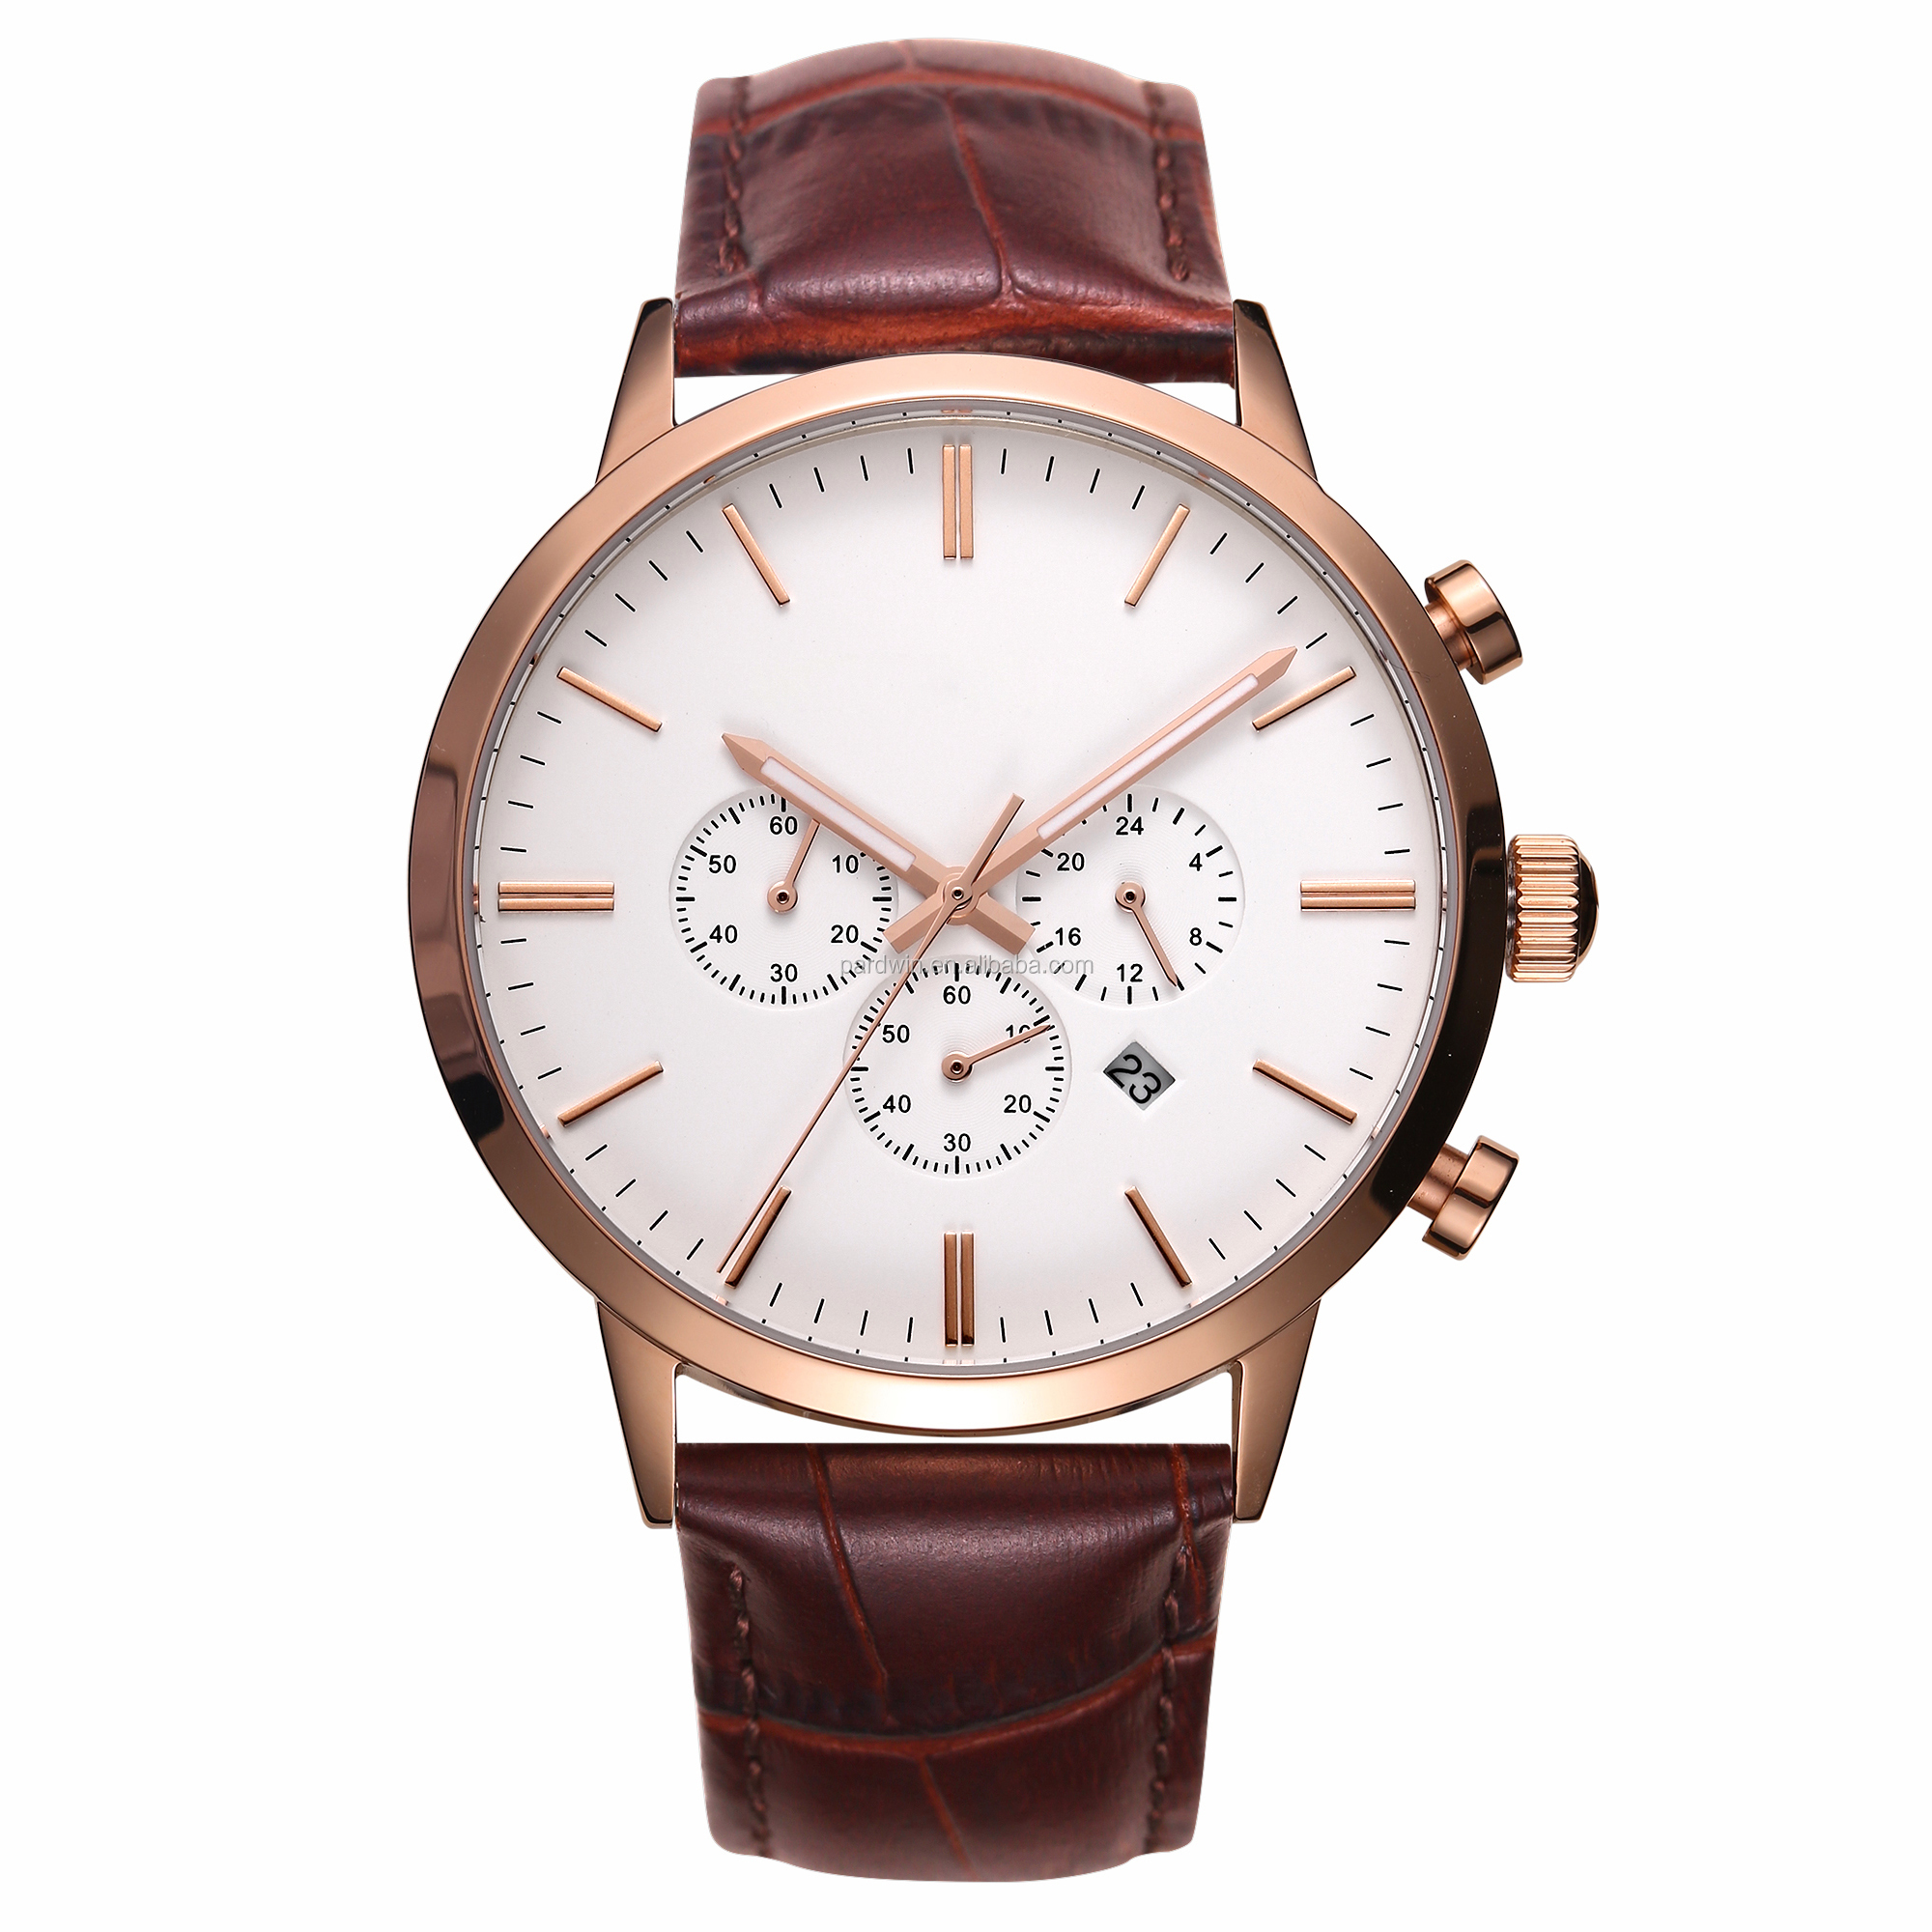 do you want to design your own custom watches?图片